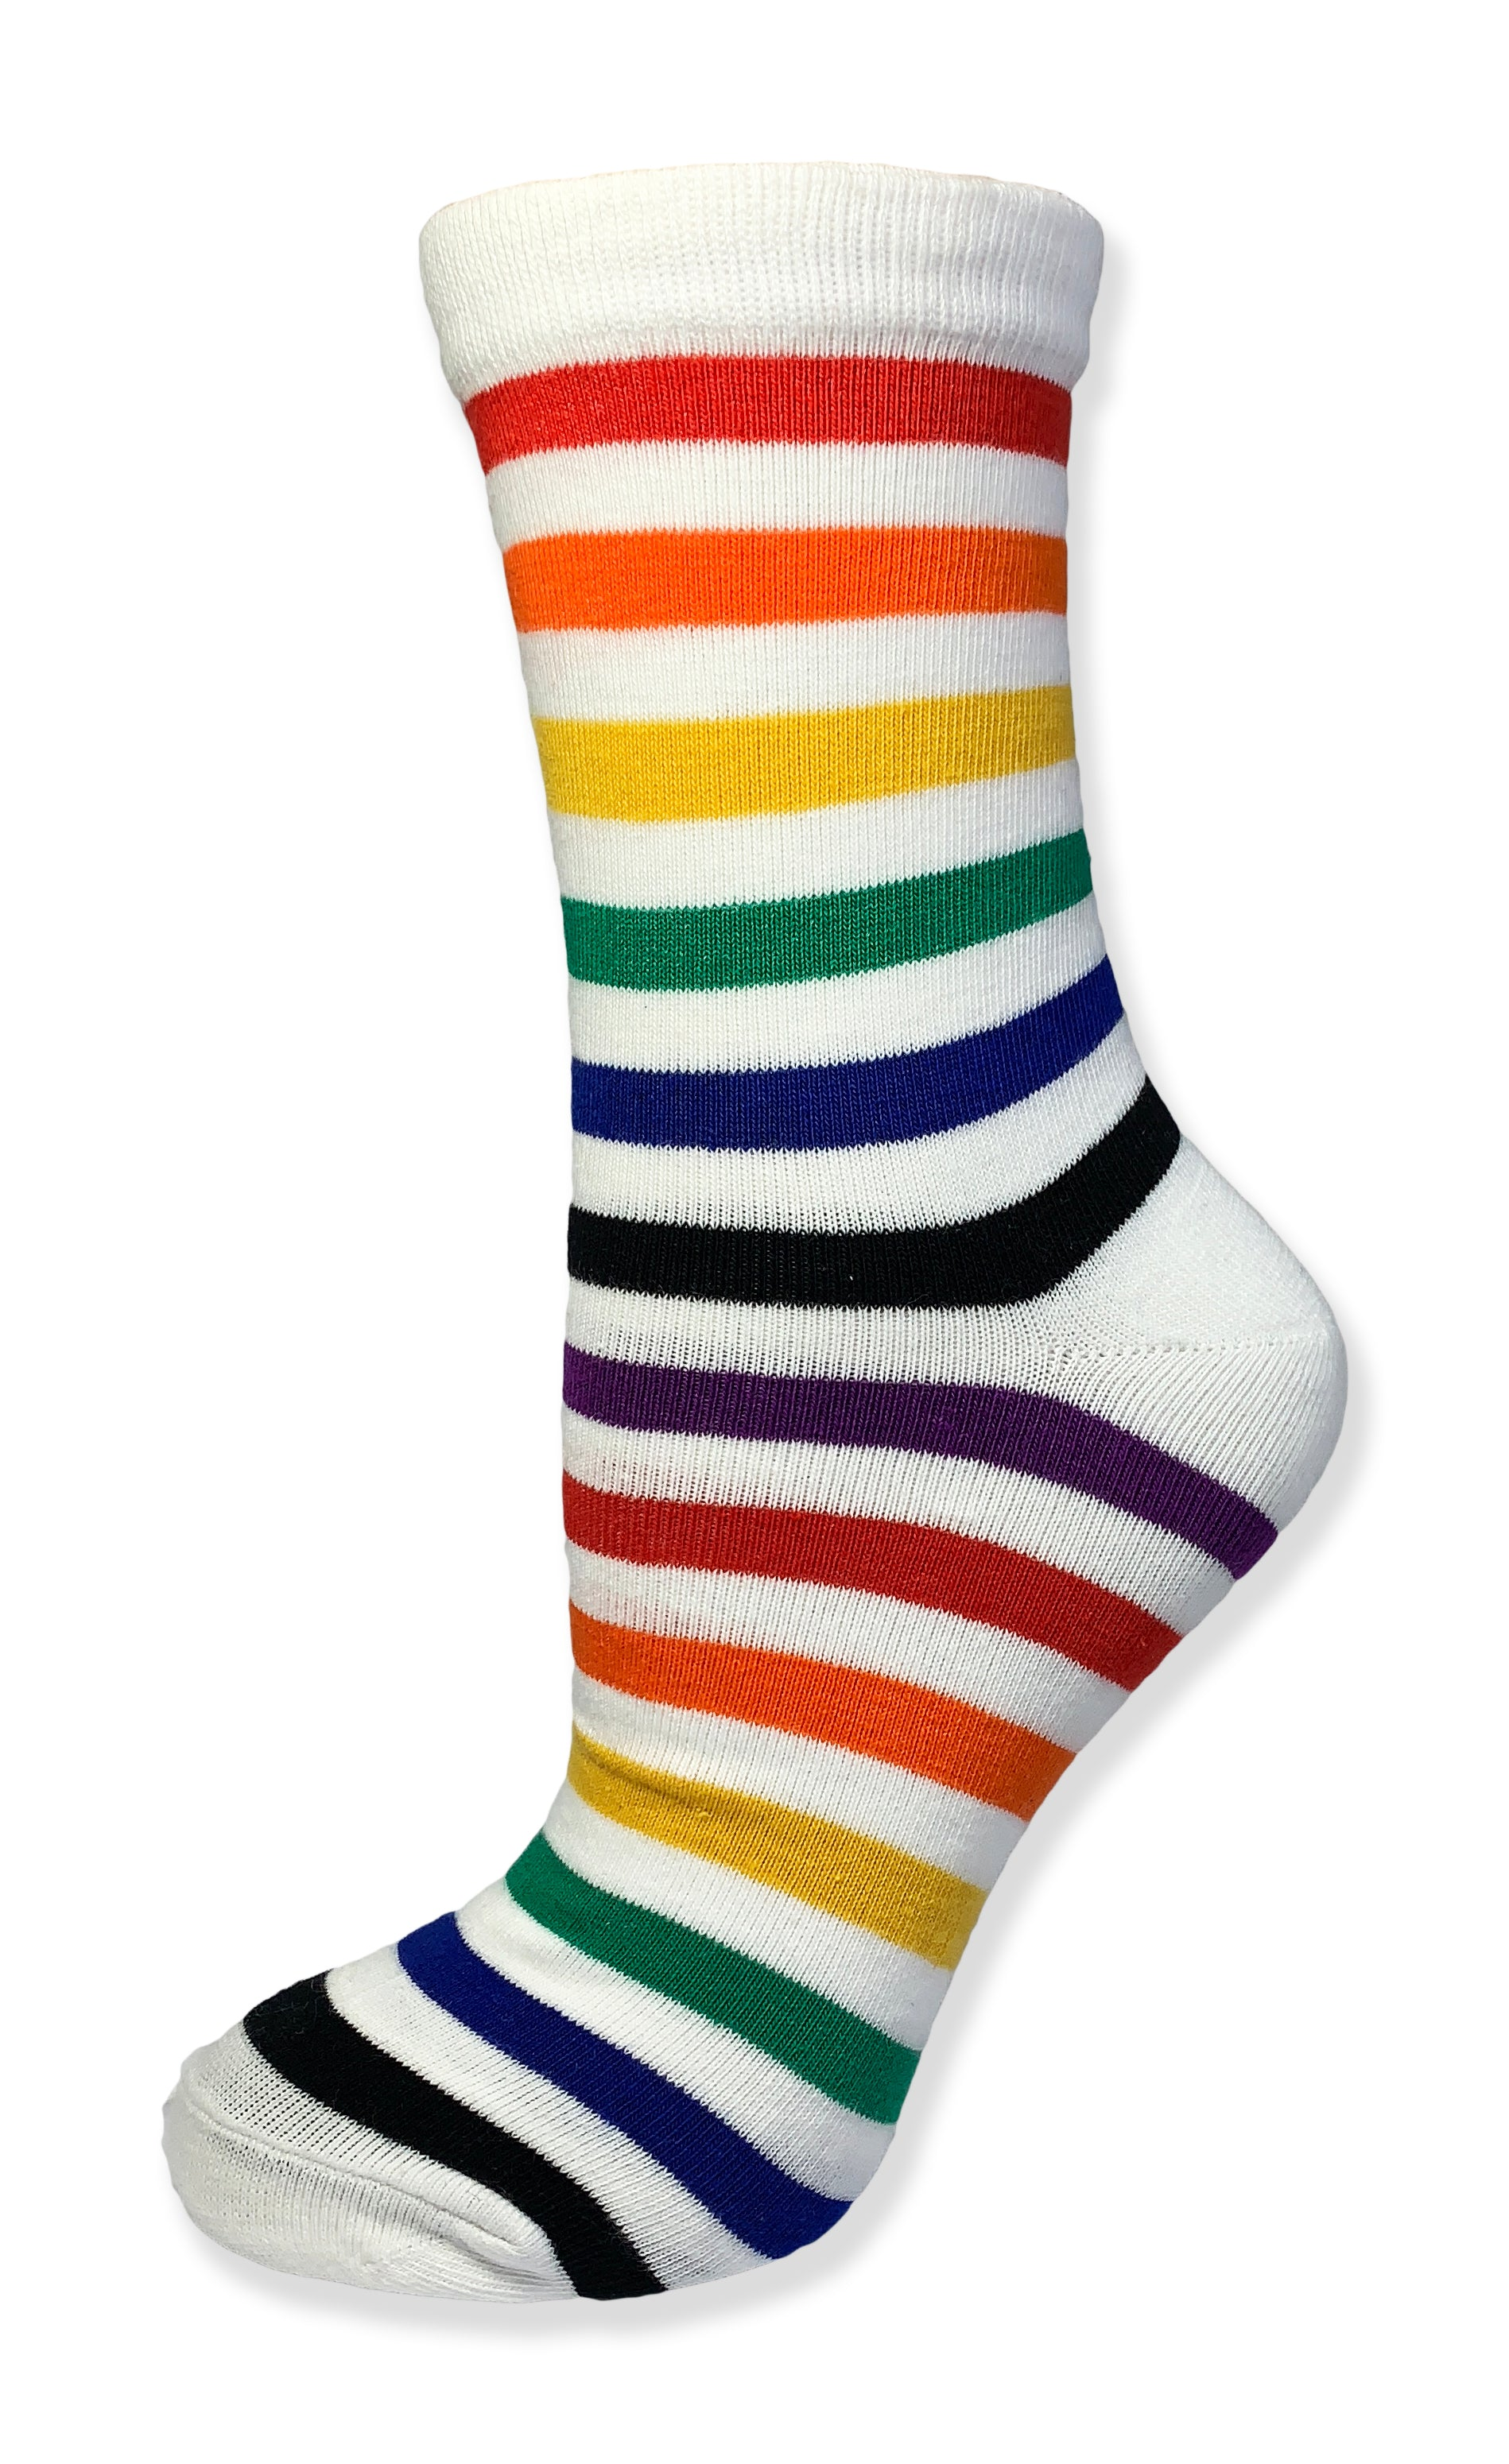 Unisex Ankle Height Rainbow Striped Sock